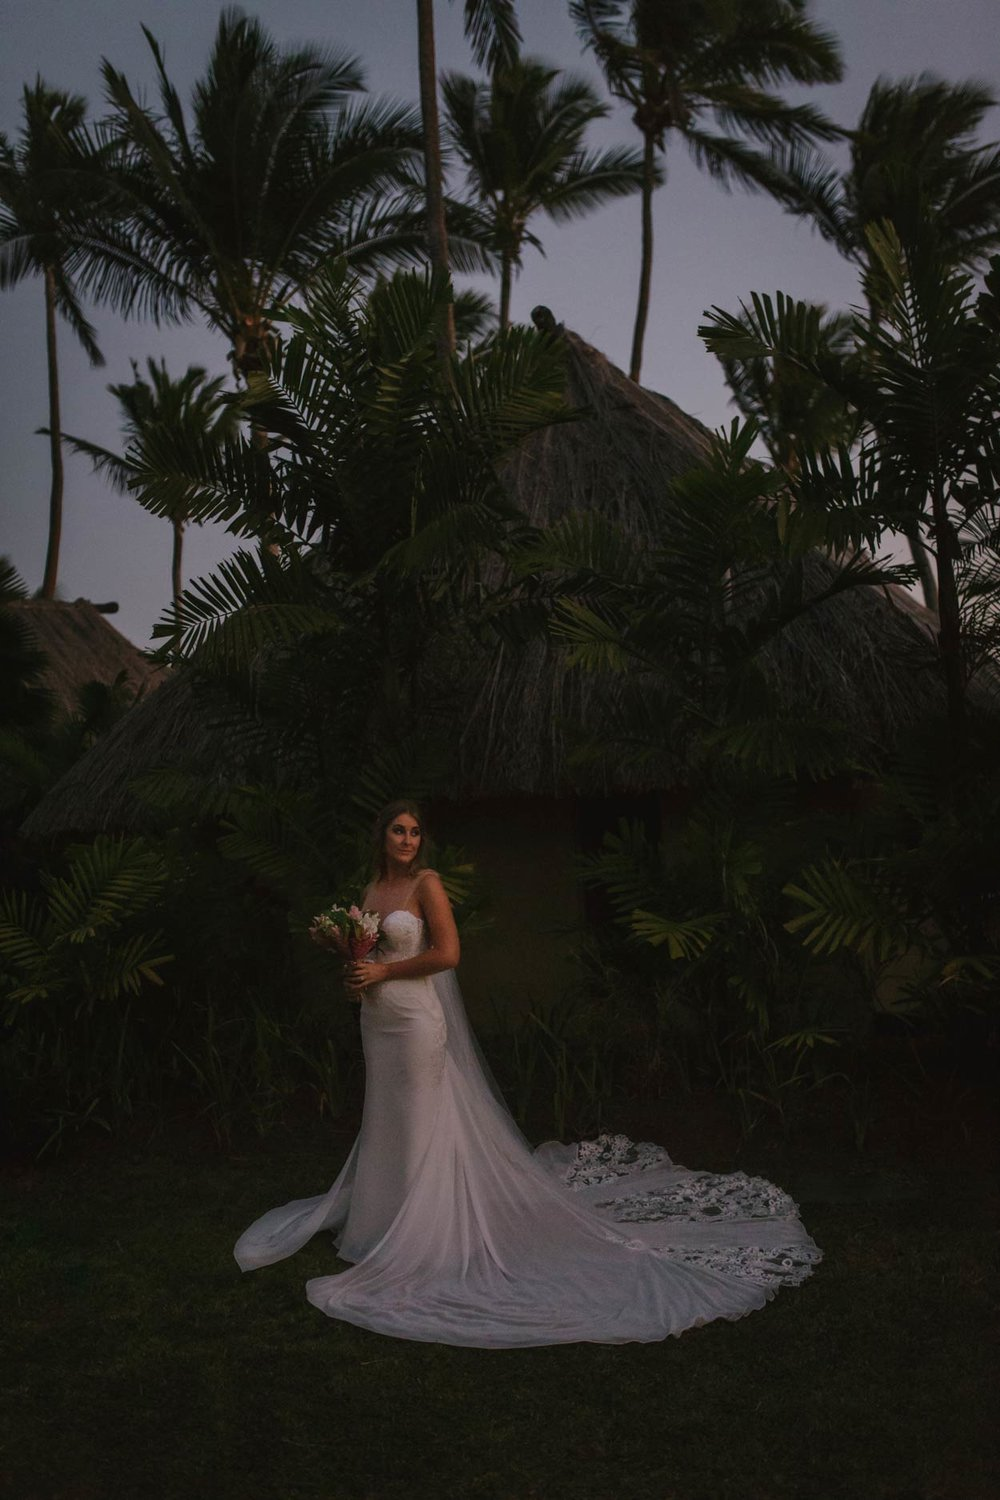 Candid Noosa, Sunshine Coast Wedding - Brisbane, Queensland, Australian Destination Eco Elopement